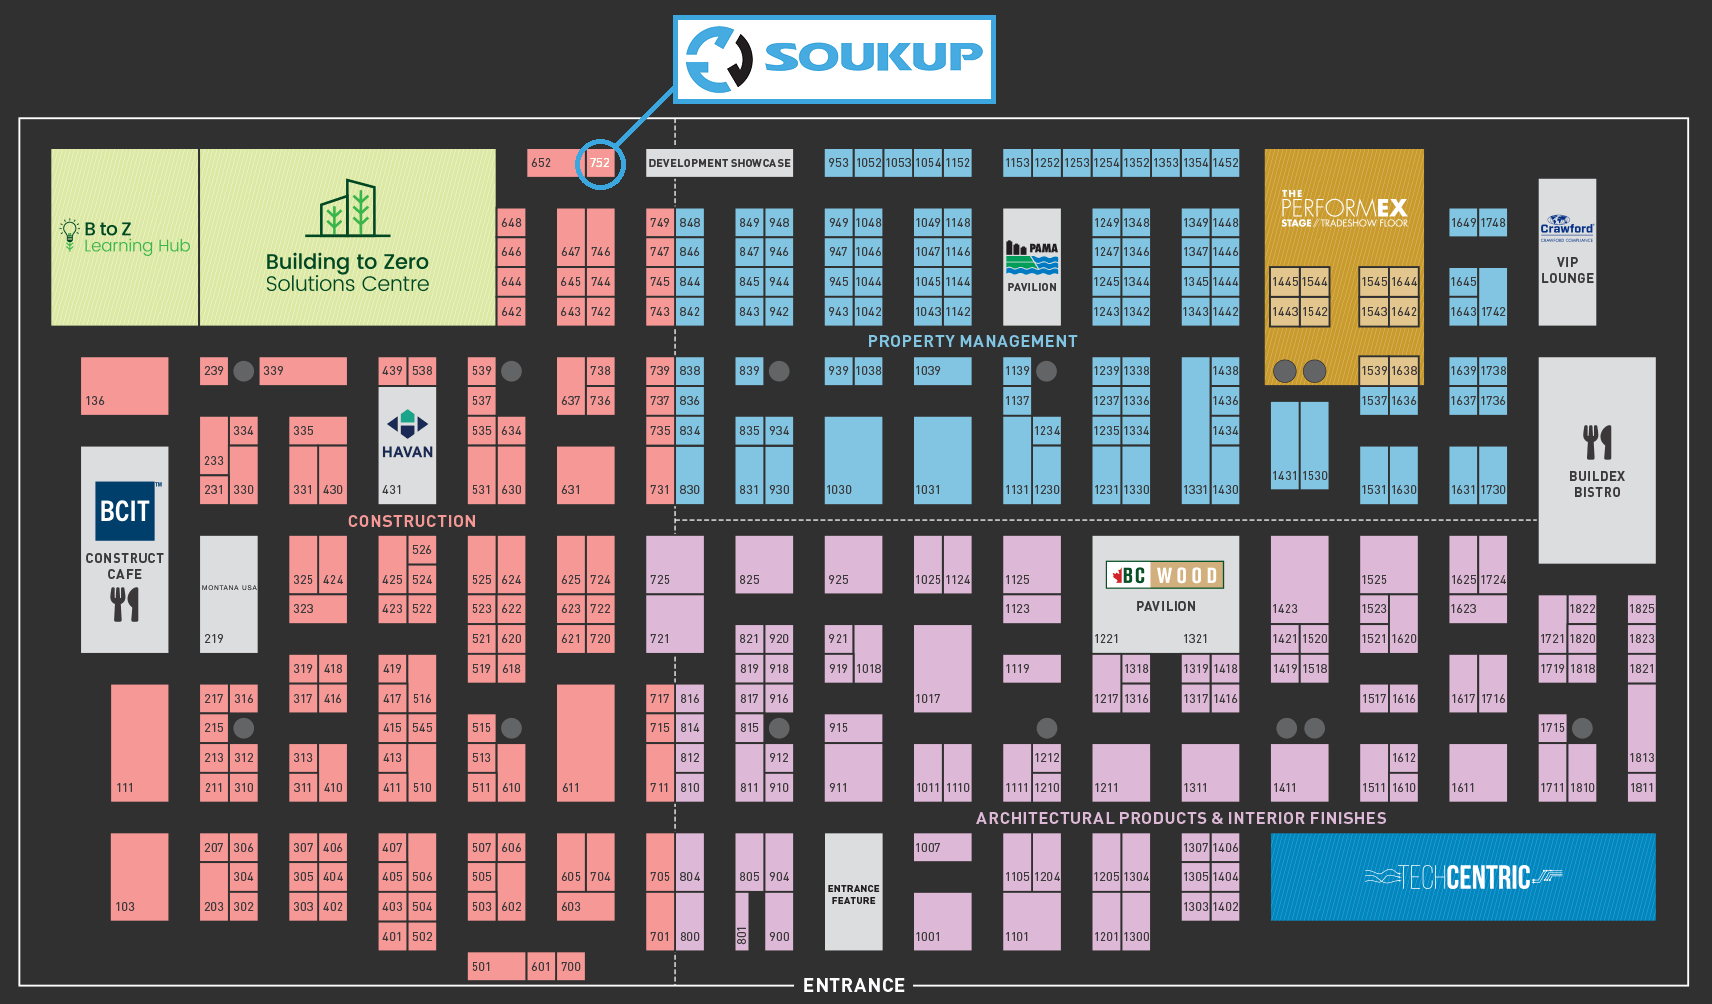 Soukup America at BUILDEX 2020